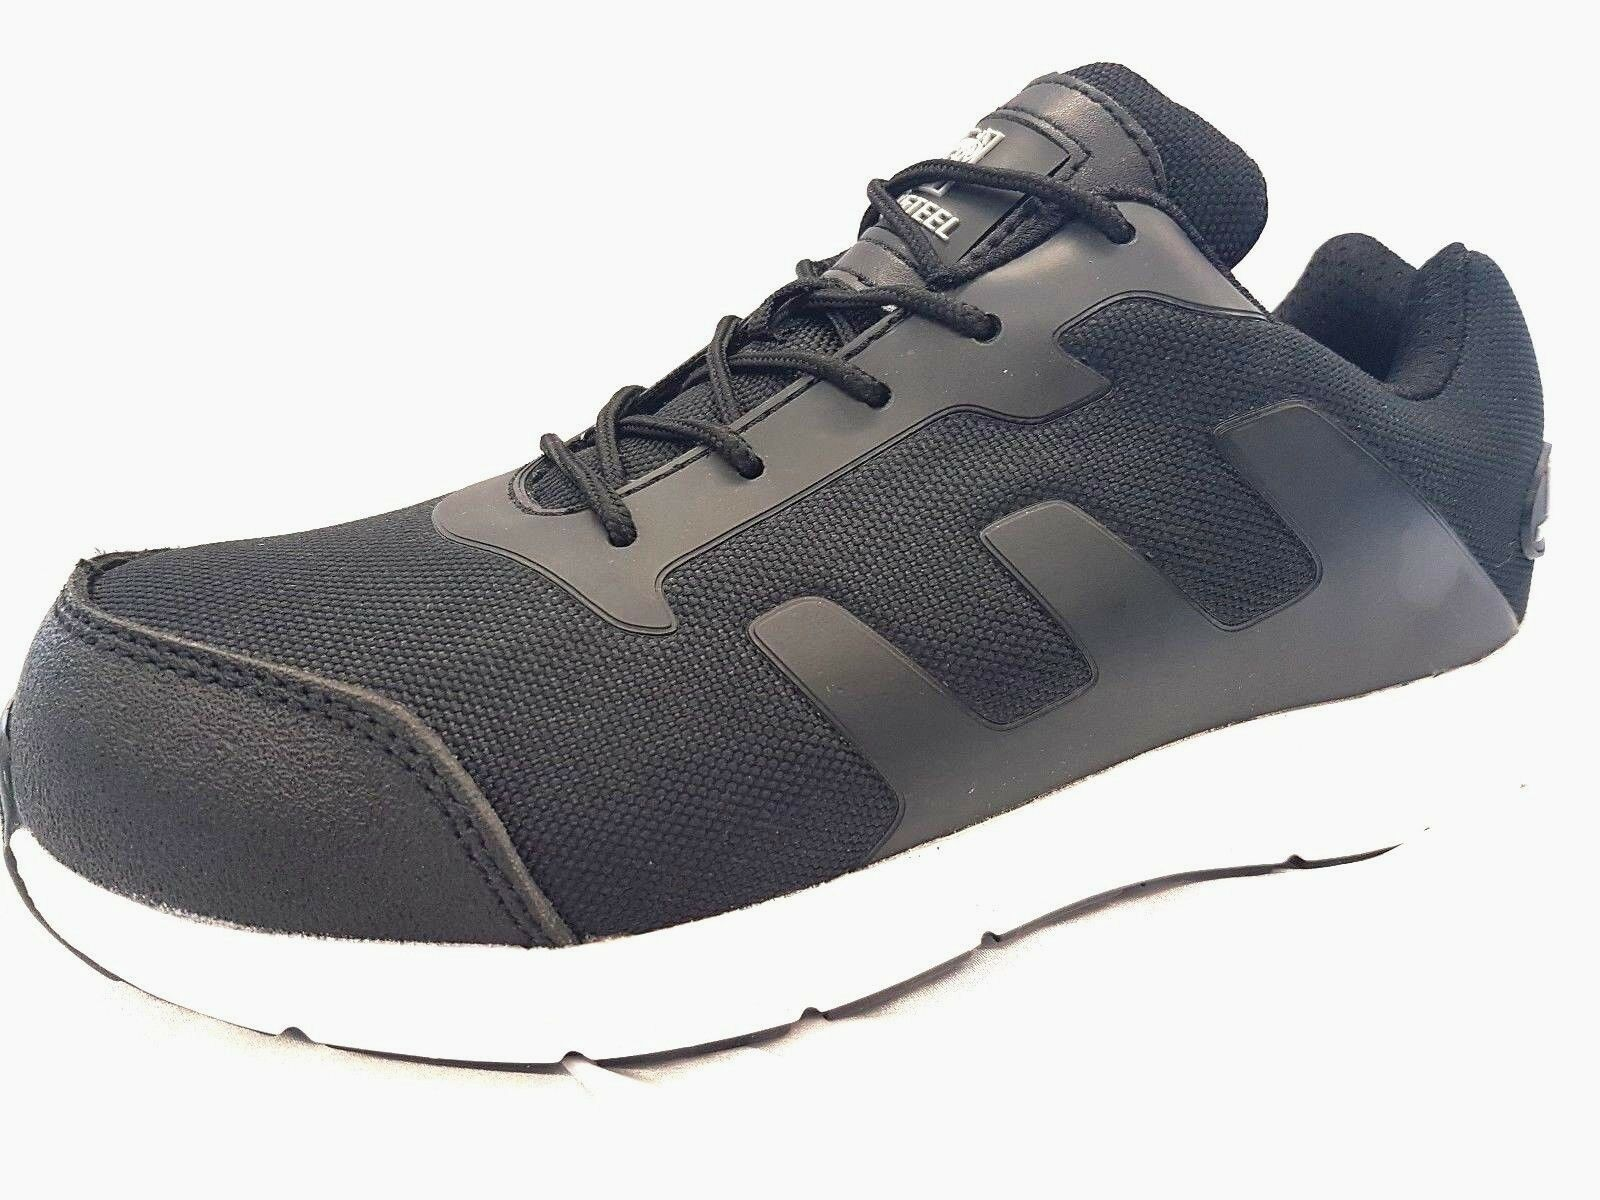 MENS NEW Canvas mesh lightweight STEEL TOE CAP SAFETY TRAINER SHOES WORK SIZE 10